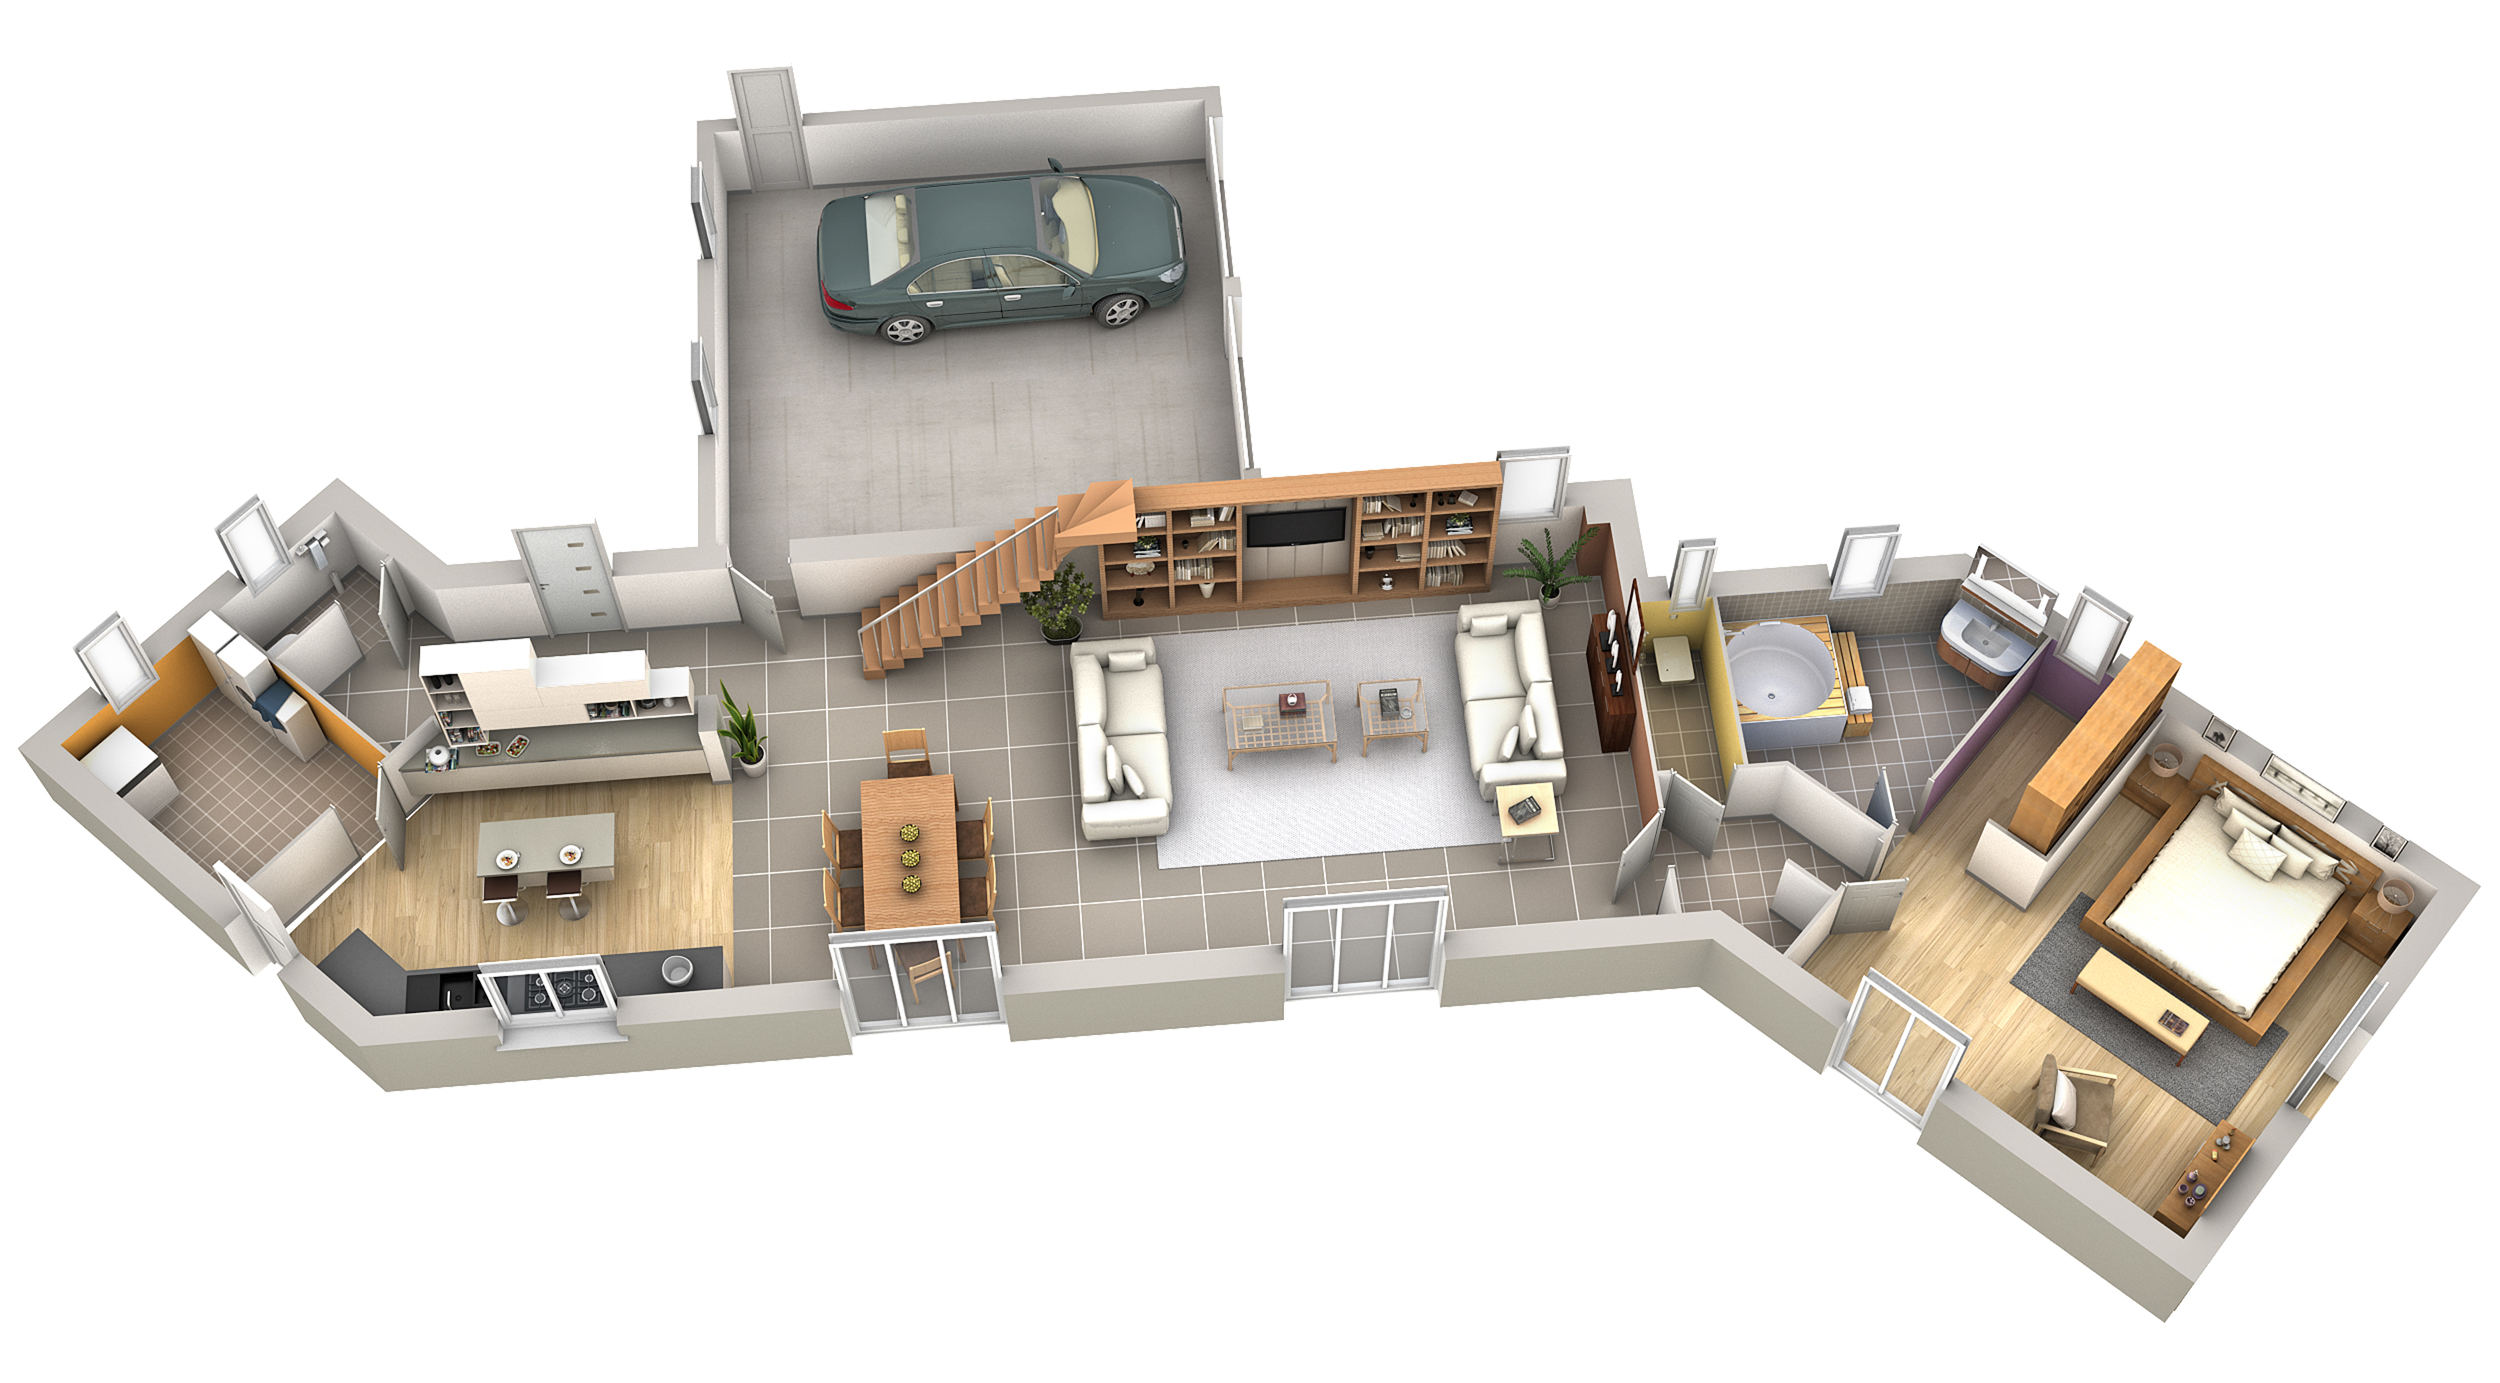 Plan Interieur Maison En D Of Plan Maison Contemporaine Safran Villas Club